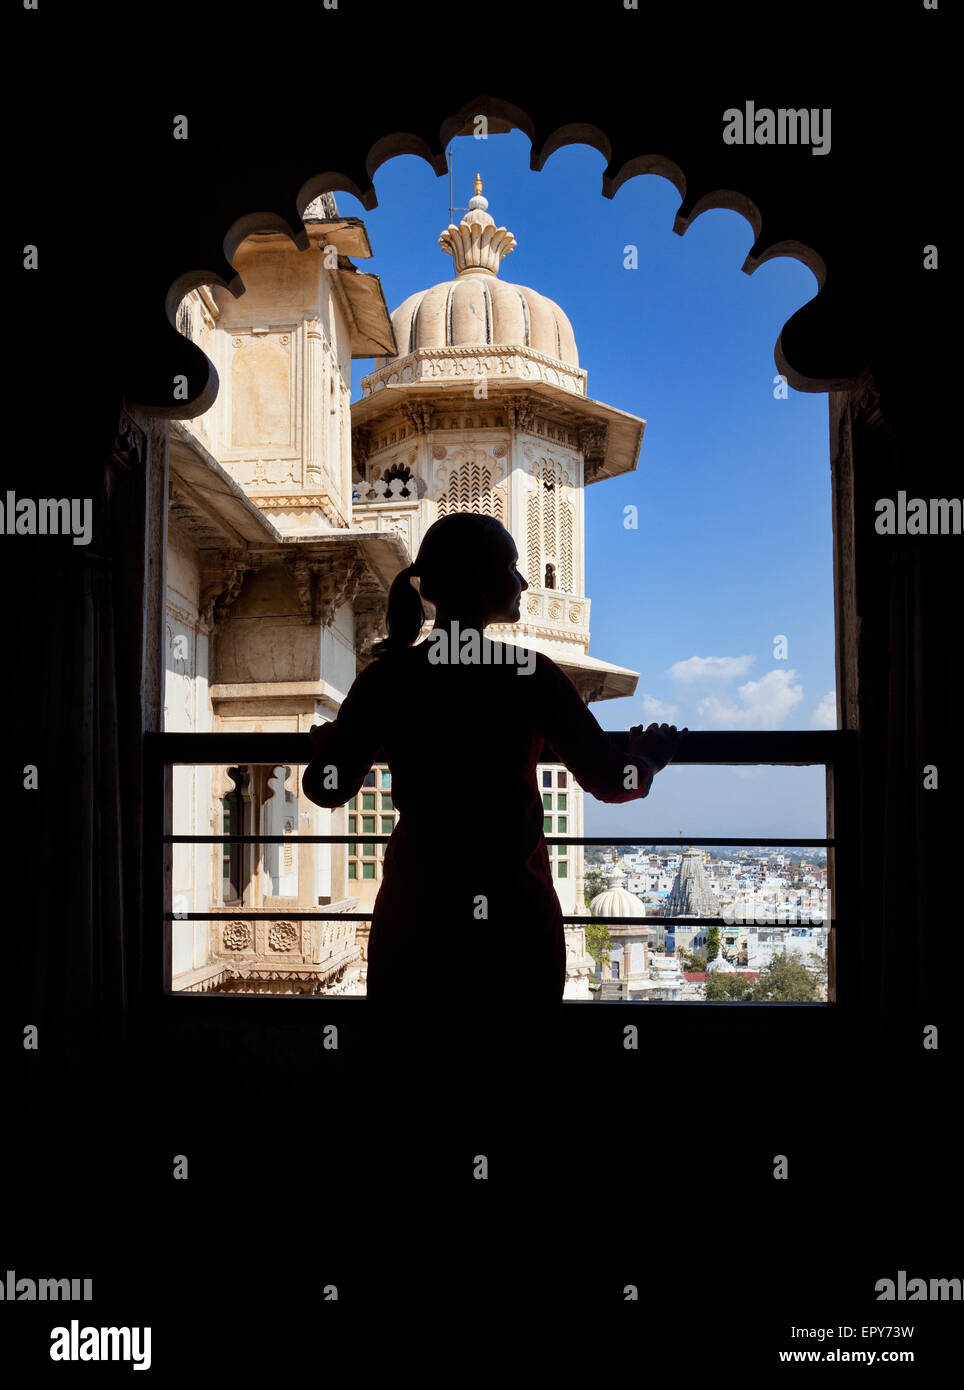 Woman silhouette on the balcony in City Palace museum of Udaipur, Rajasthan, India - Stock Image